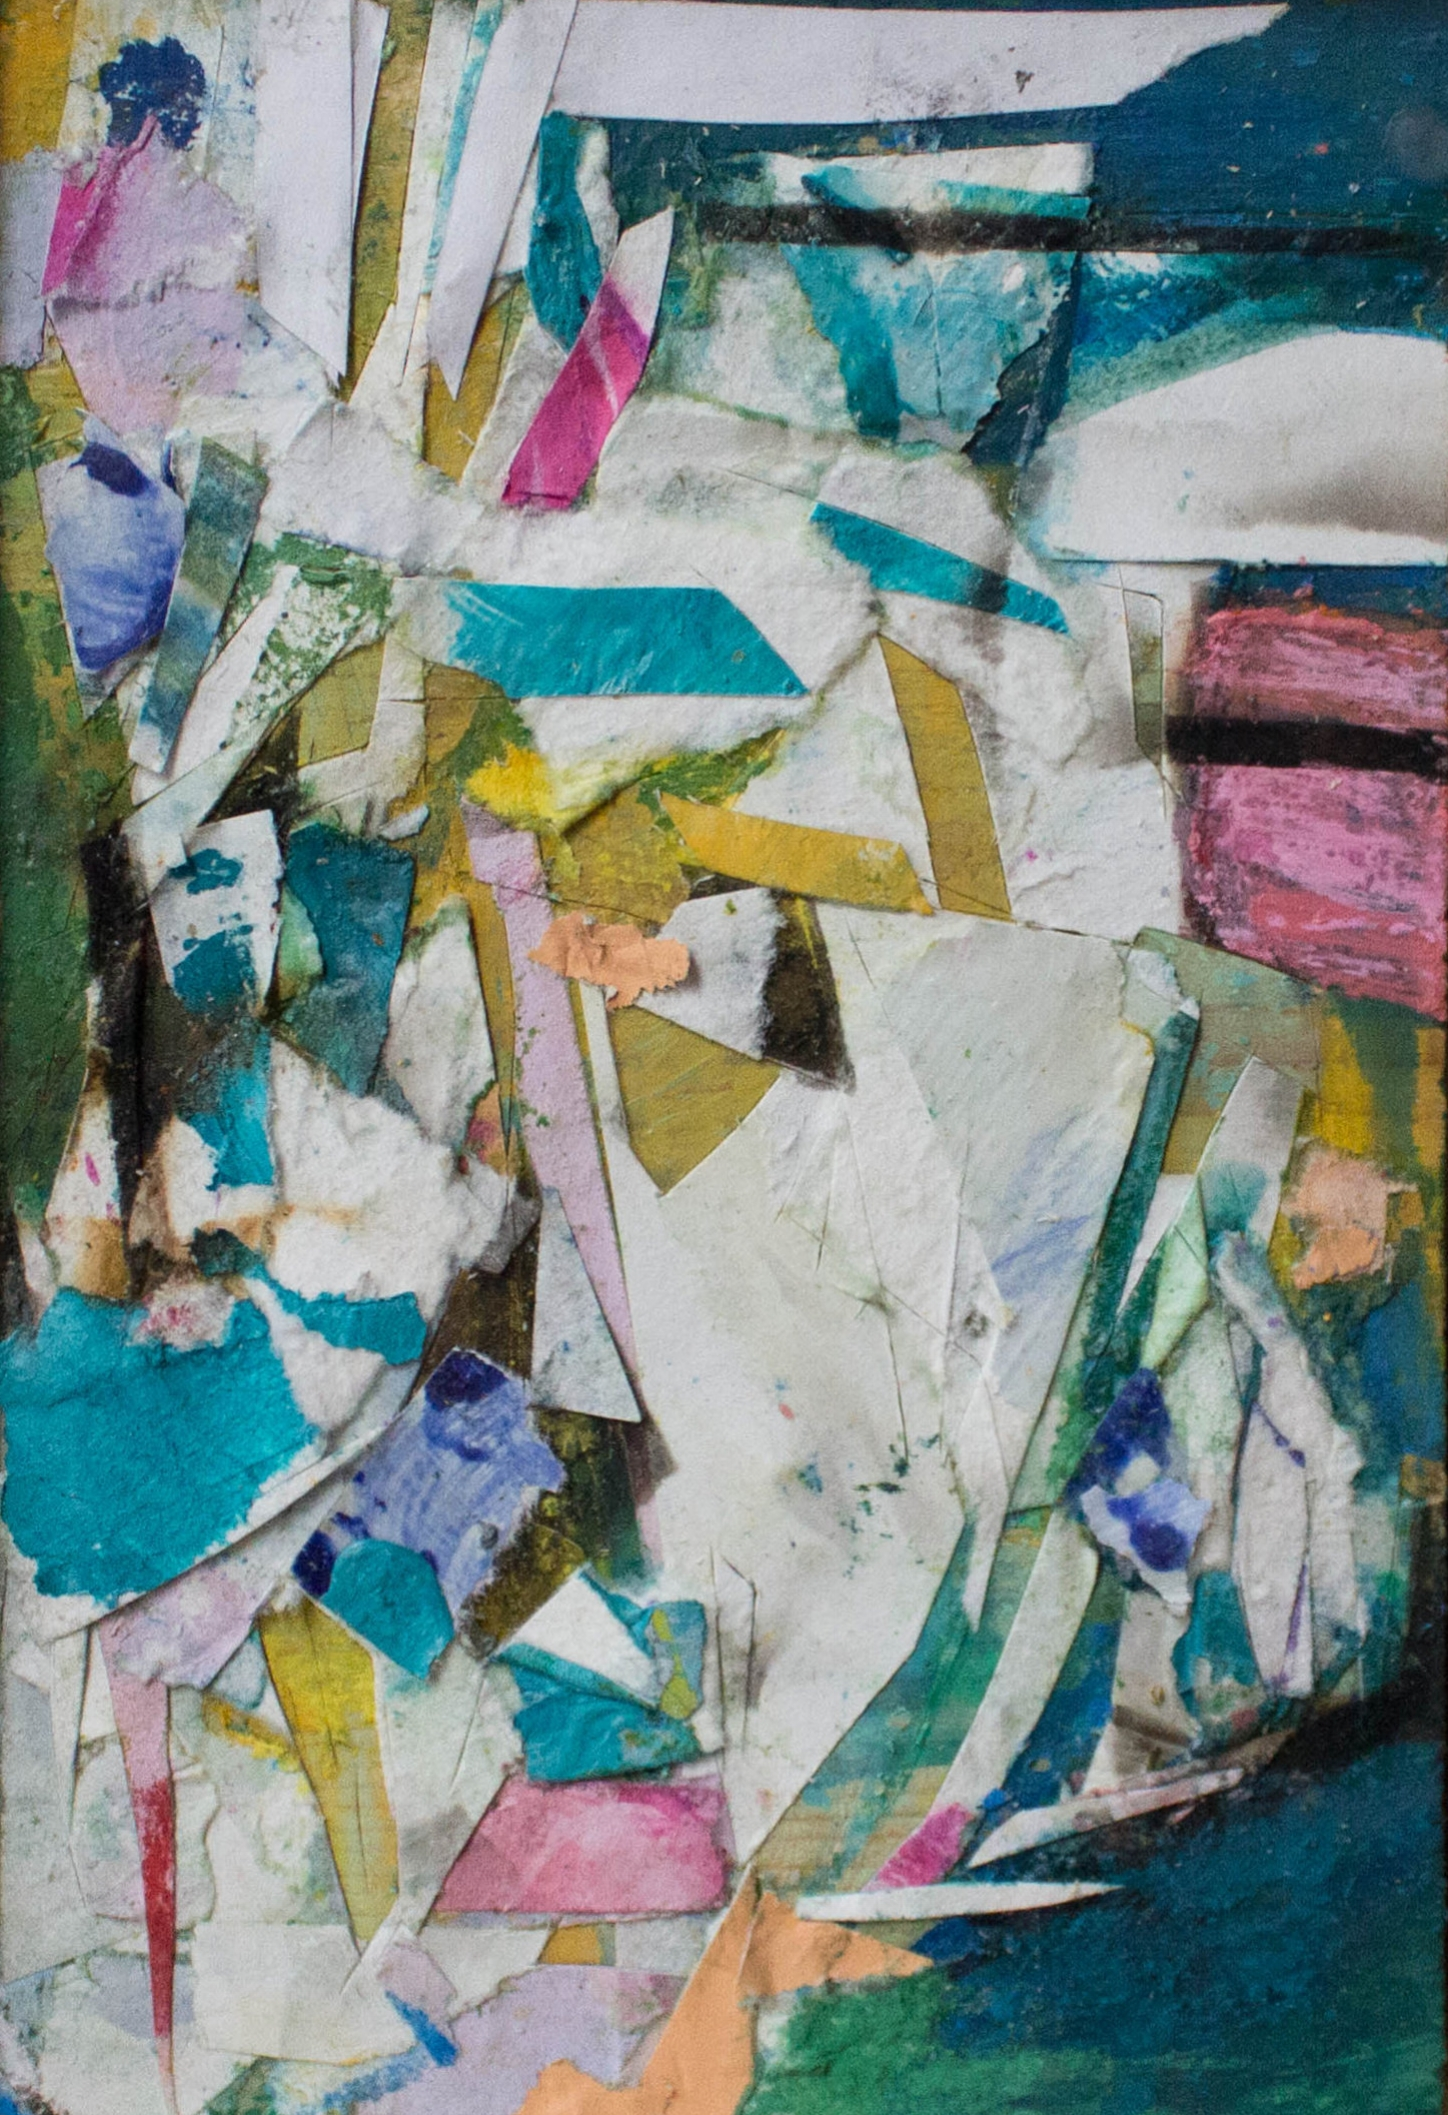 """52 Pieces, 5 3/4""""x3 3/4"""",Found Scraps of Paper, Collage, Fumage, 2016, sold"""